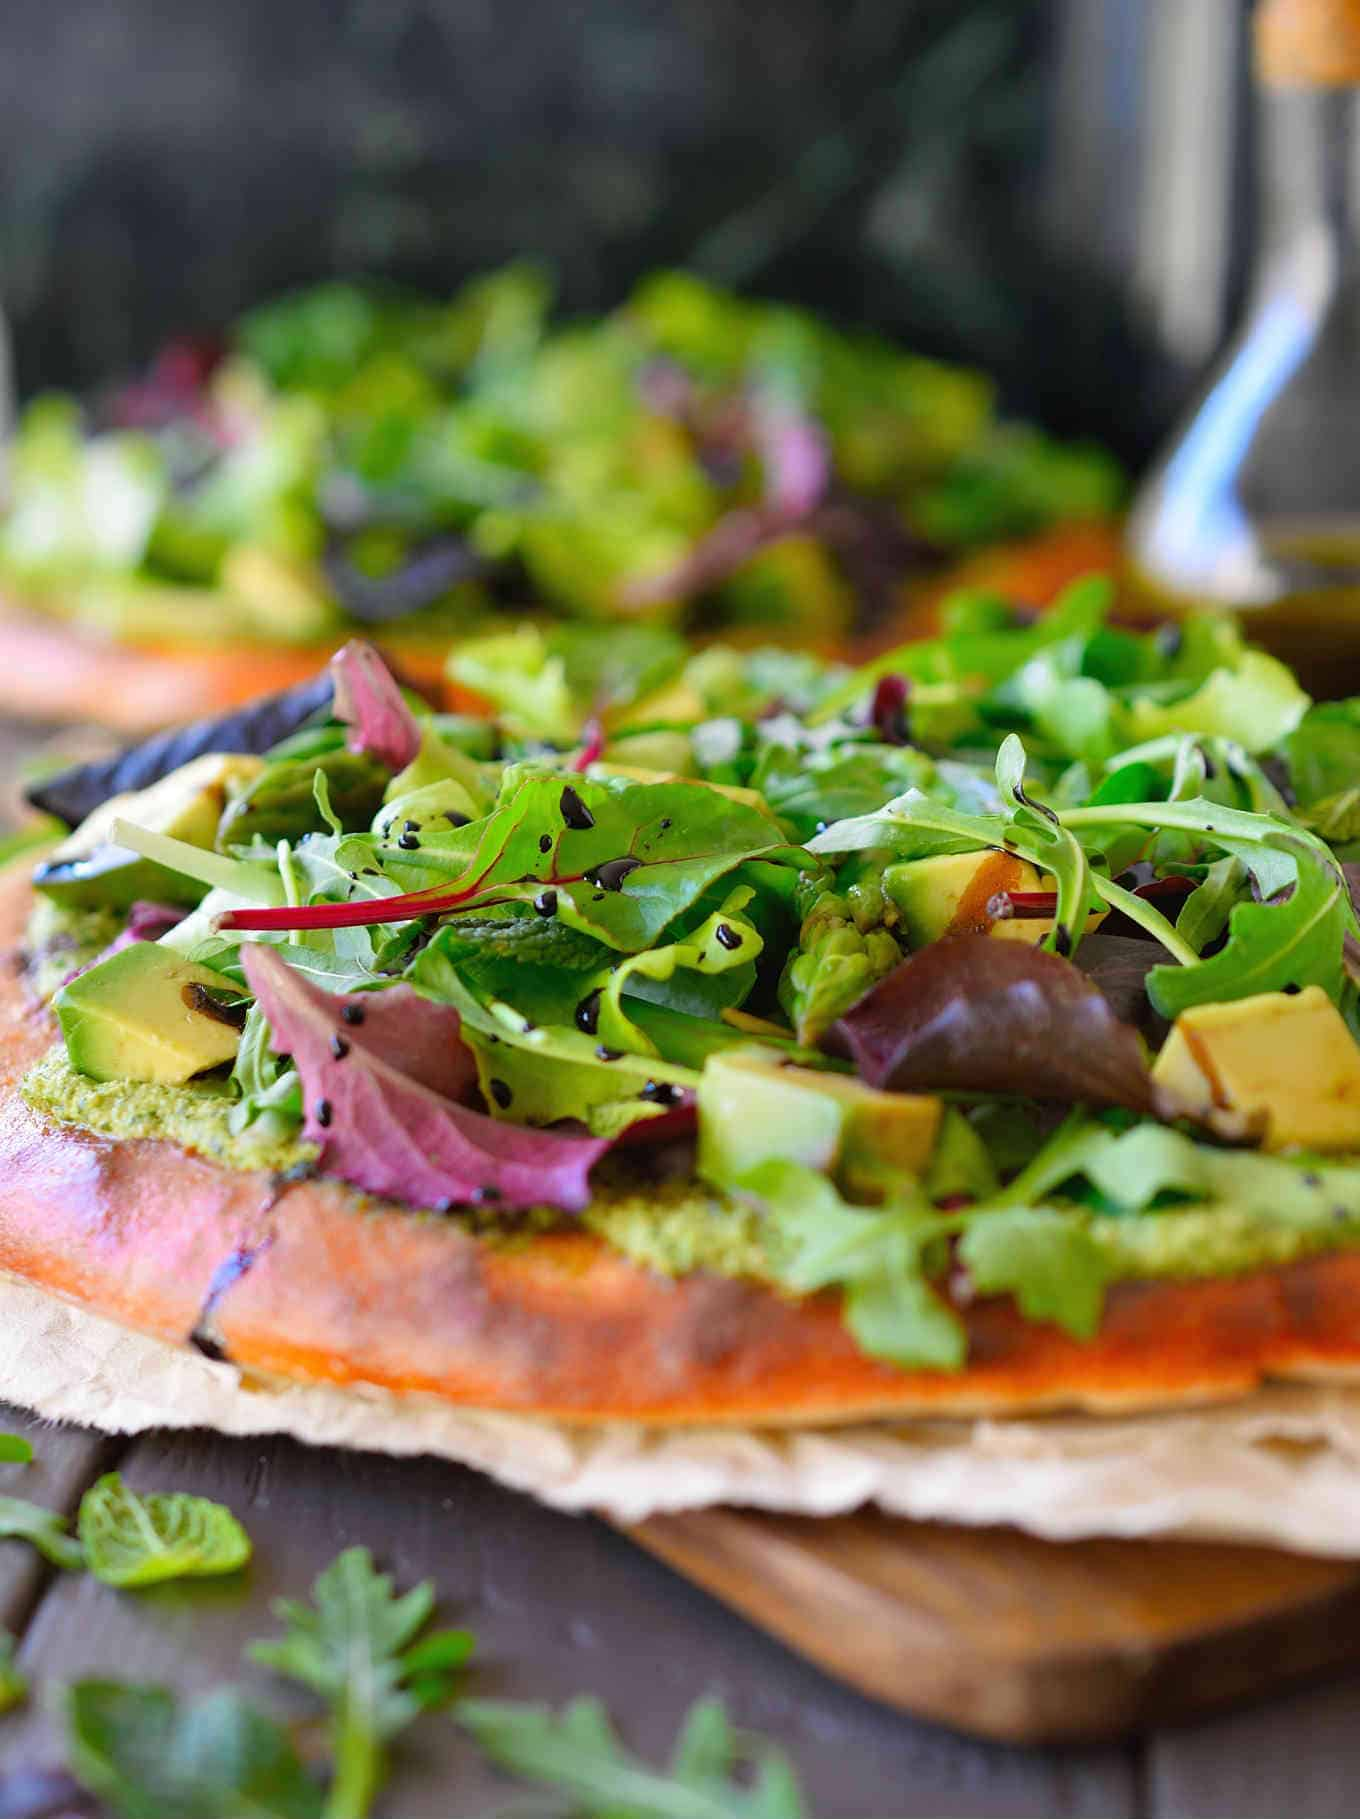 This recipe for green pizza with herbed vegan cashew cheese is a fresh and refreshing way to eat your greens. This vegan pizza recipe is packed with flavour but without the grease and looks beautiful on the plate with fresh baby greens, steamed asparagus, creamy avocado all sitting atop a delicious cashew cheese flavoured with cilantro, mint and lime. Best of all it comes together in just 20 minutes!